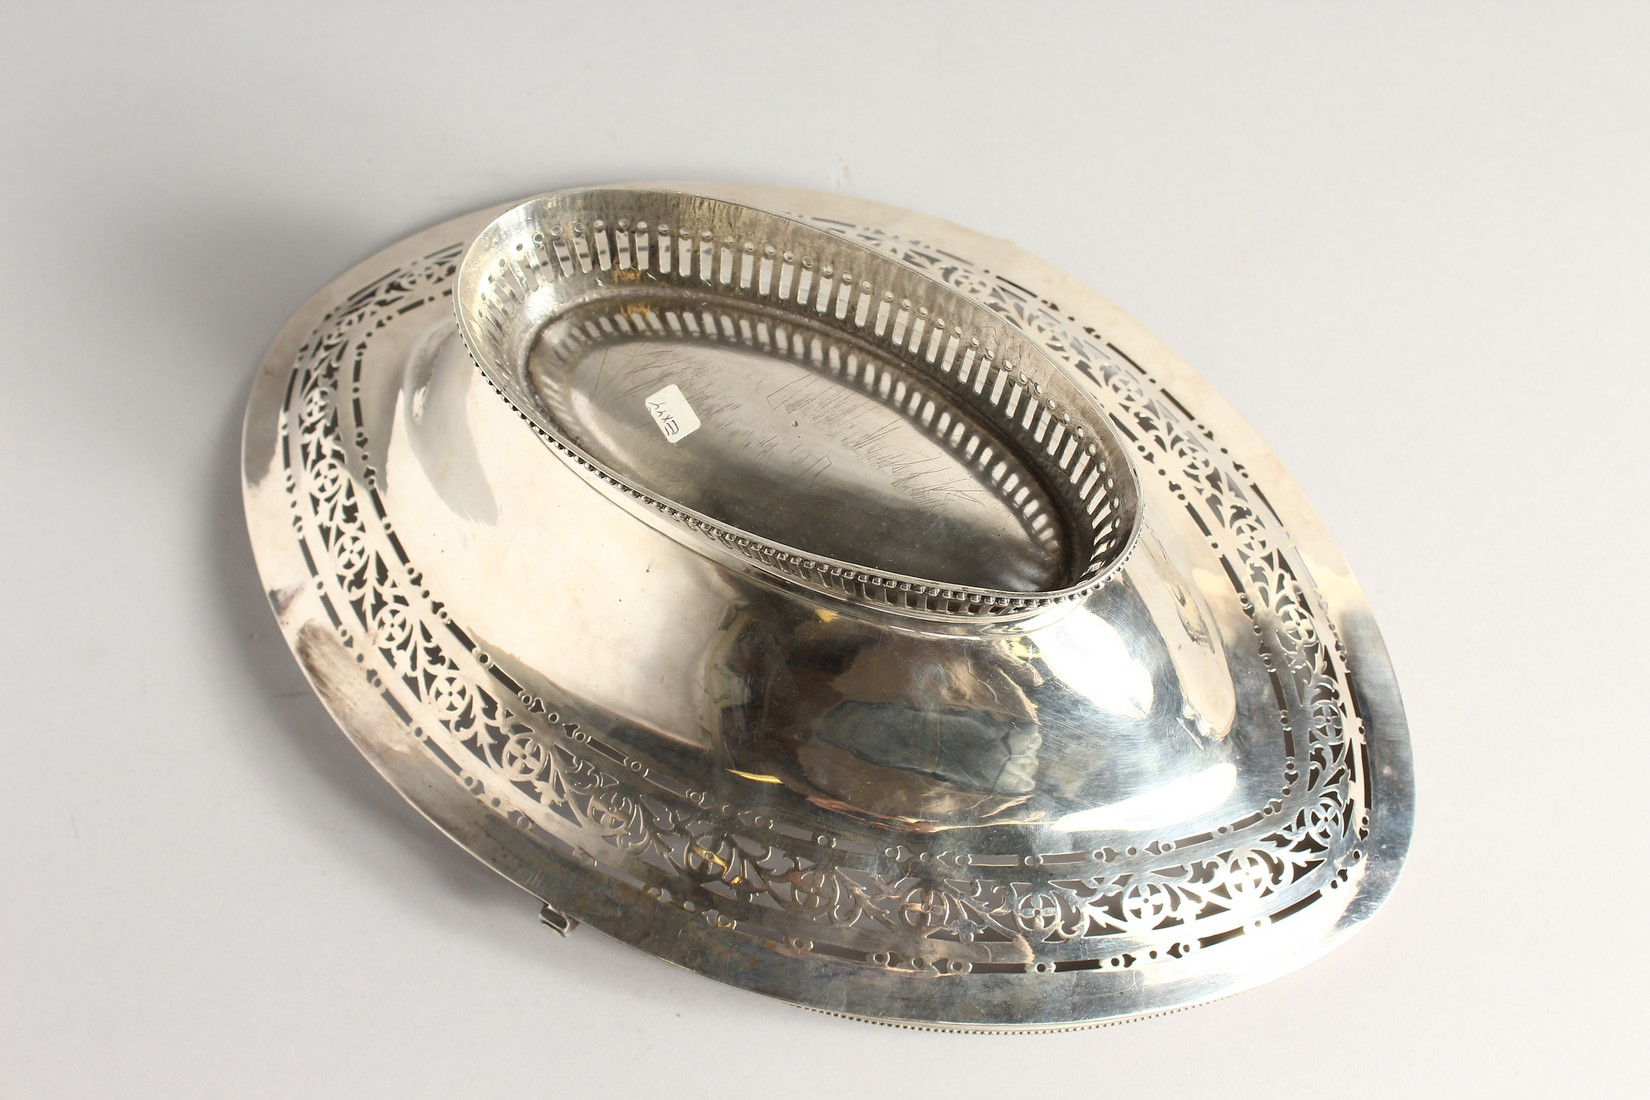 A FINE GEORGE III SILVER CAKE BASKET by HESTER BATEMAN with bead edges and swing handles. London - Image 5 of 5